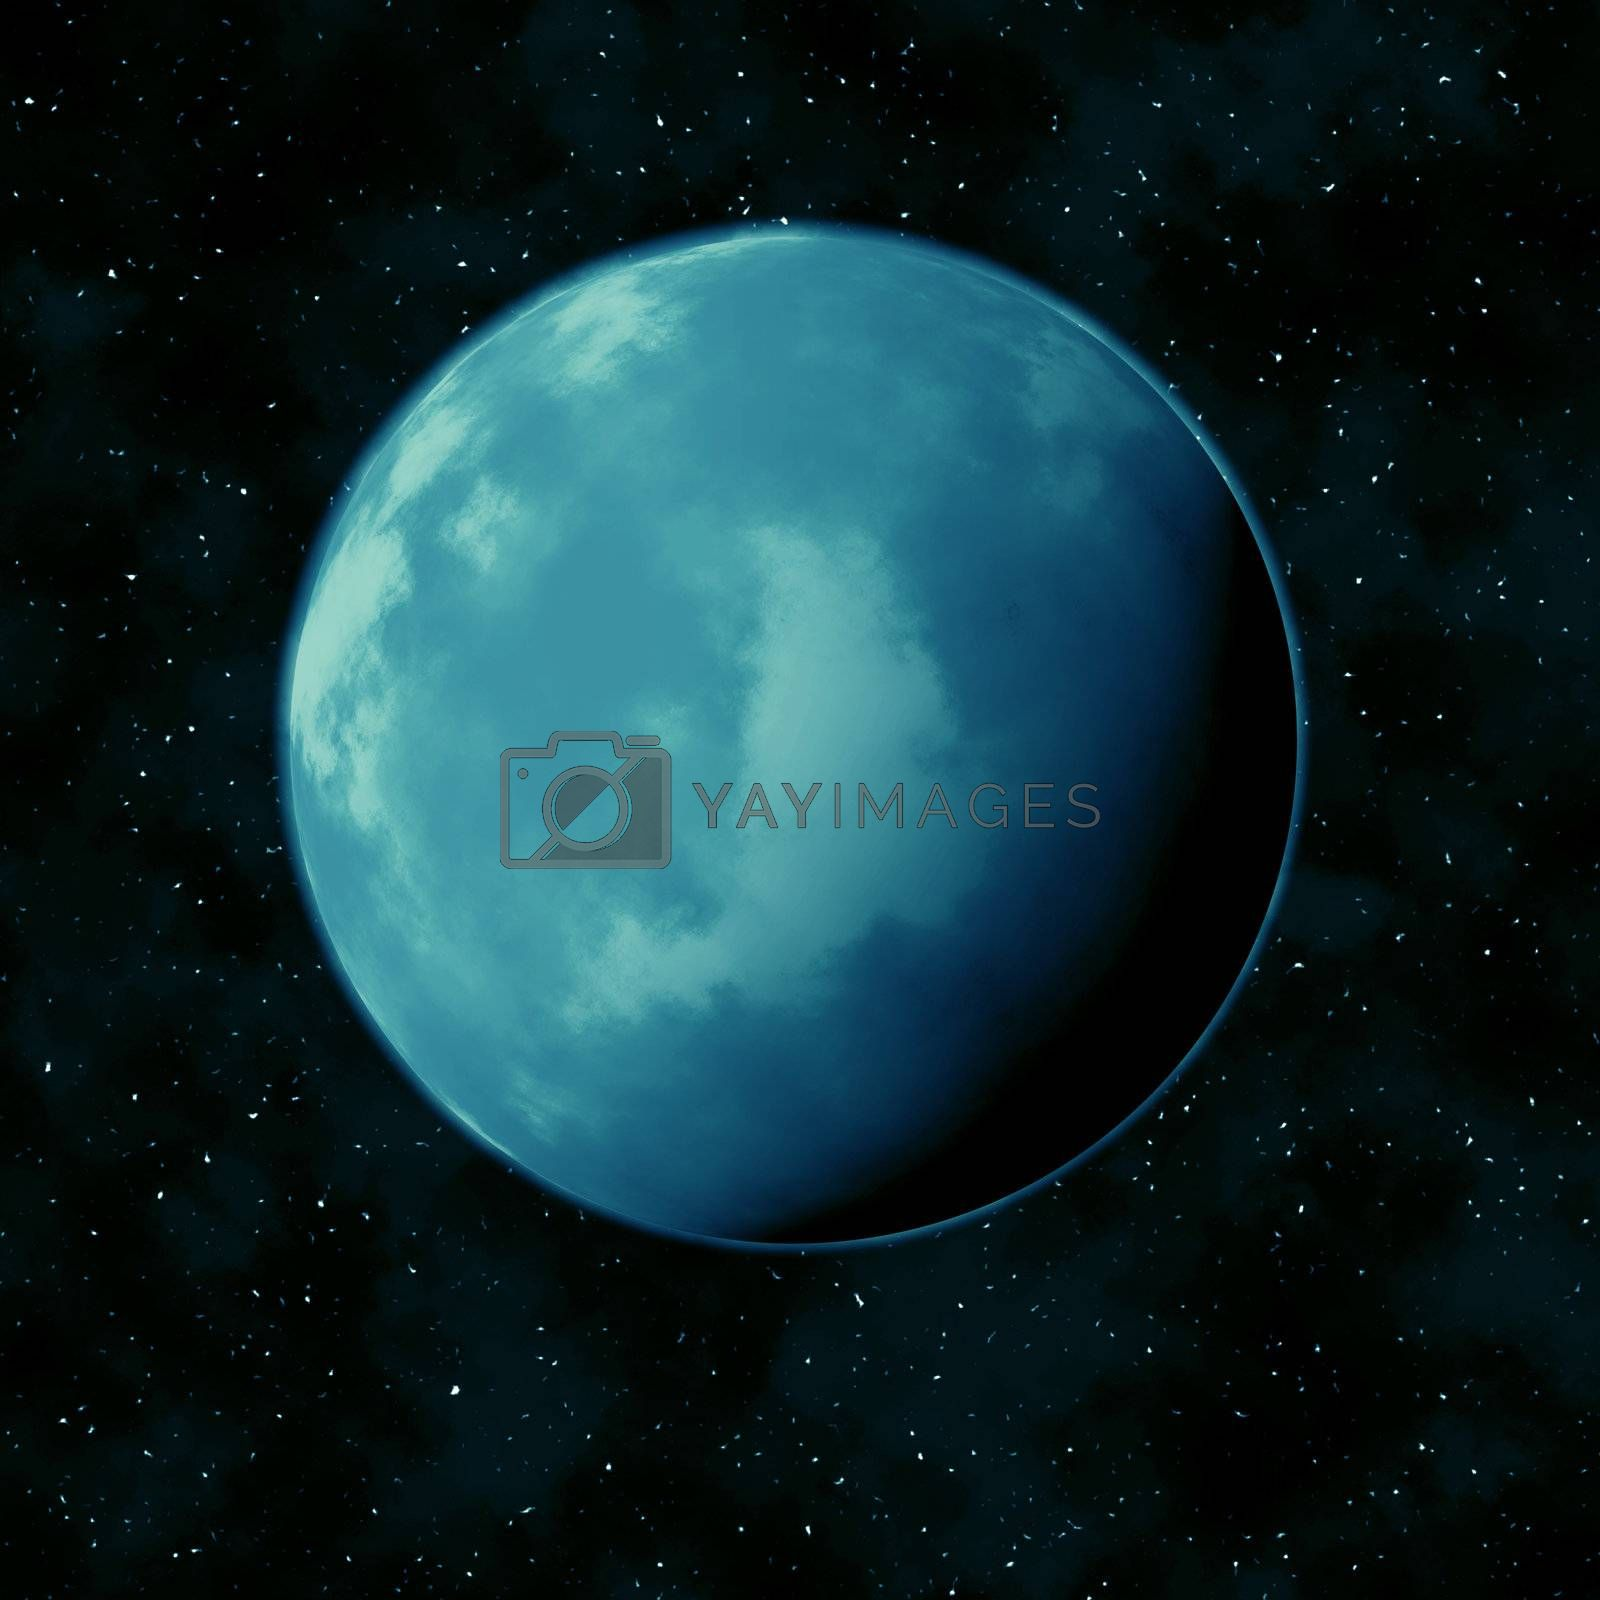 Blue planet in the star sky against a black background